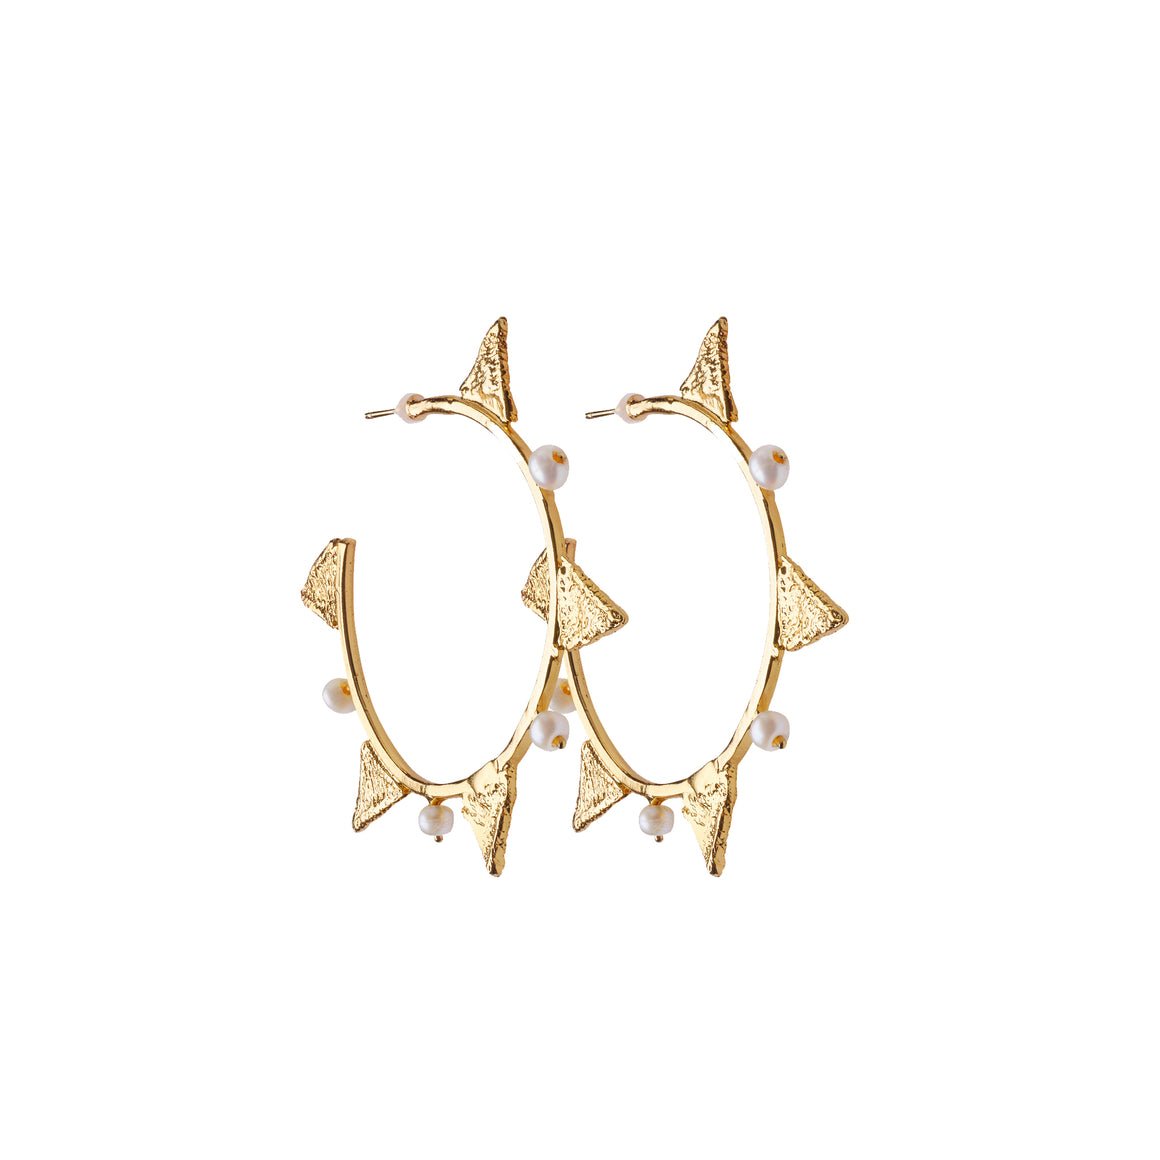 Tri Hoop Pearl Earrings - Alexandra Koumba Designs